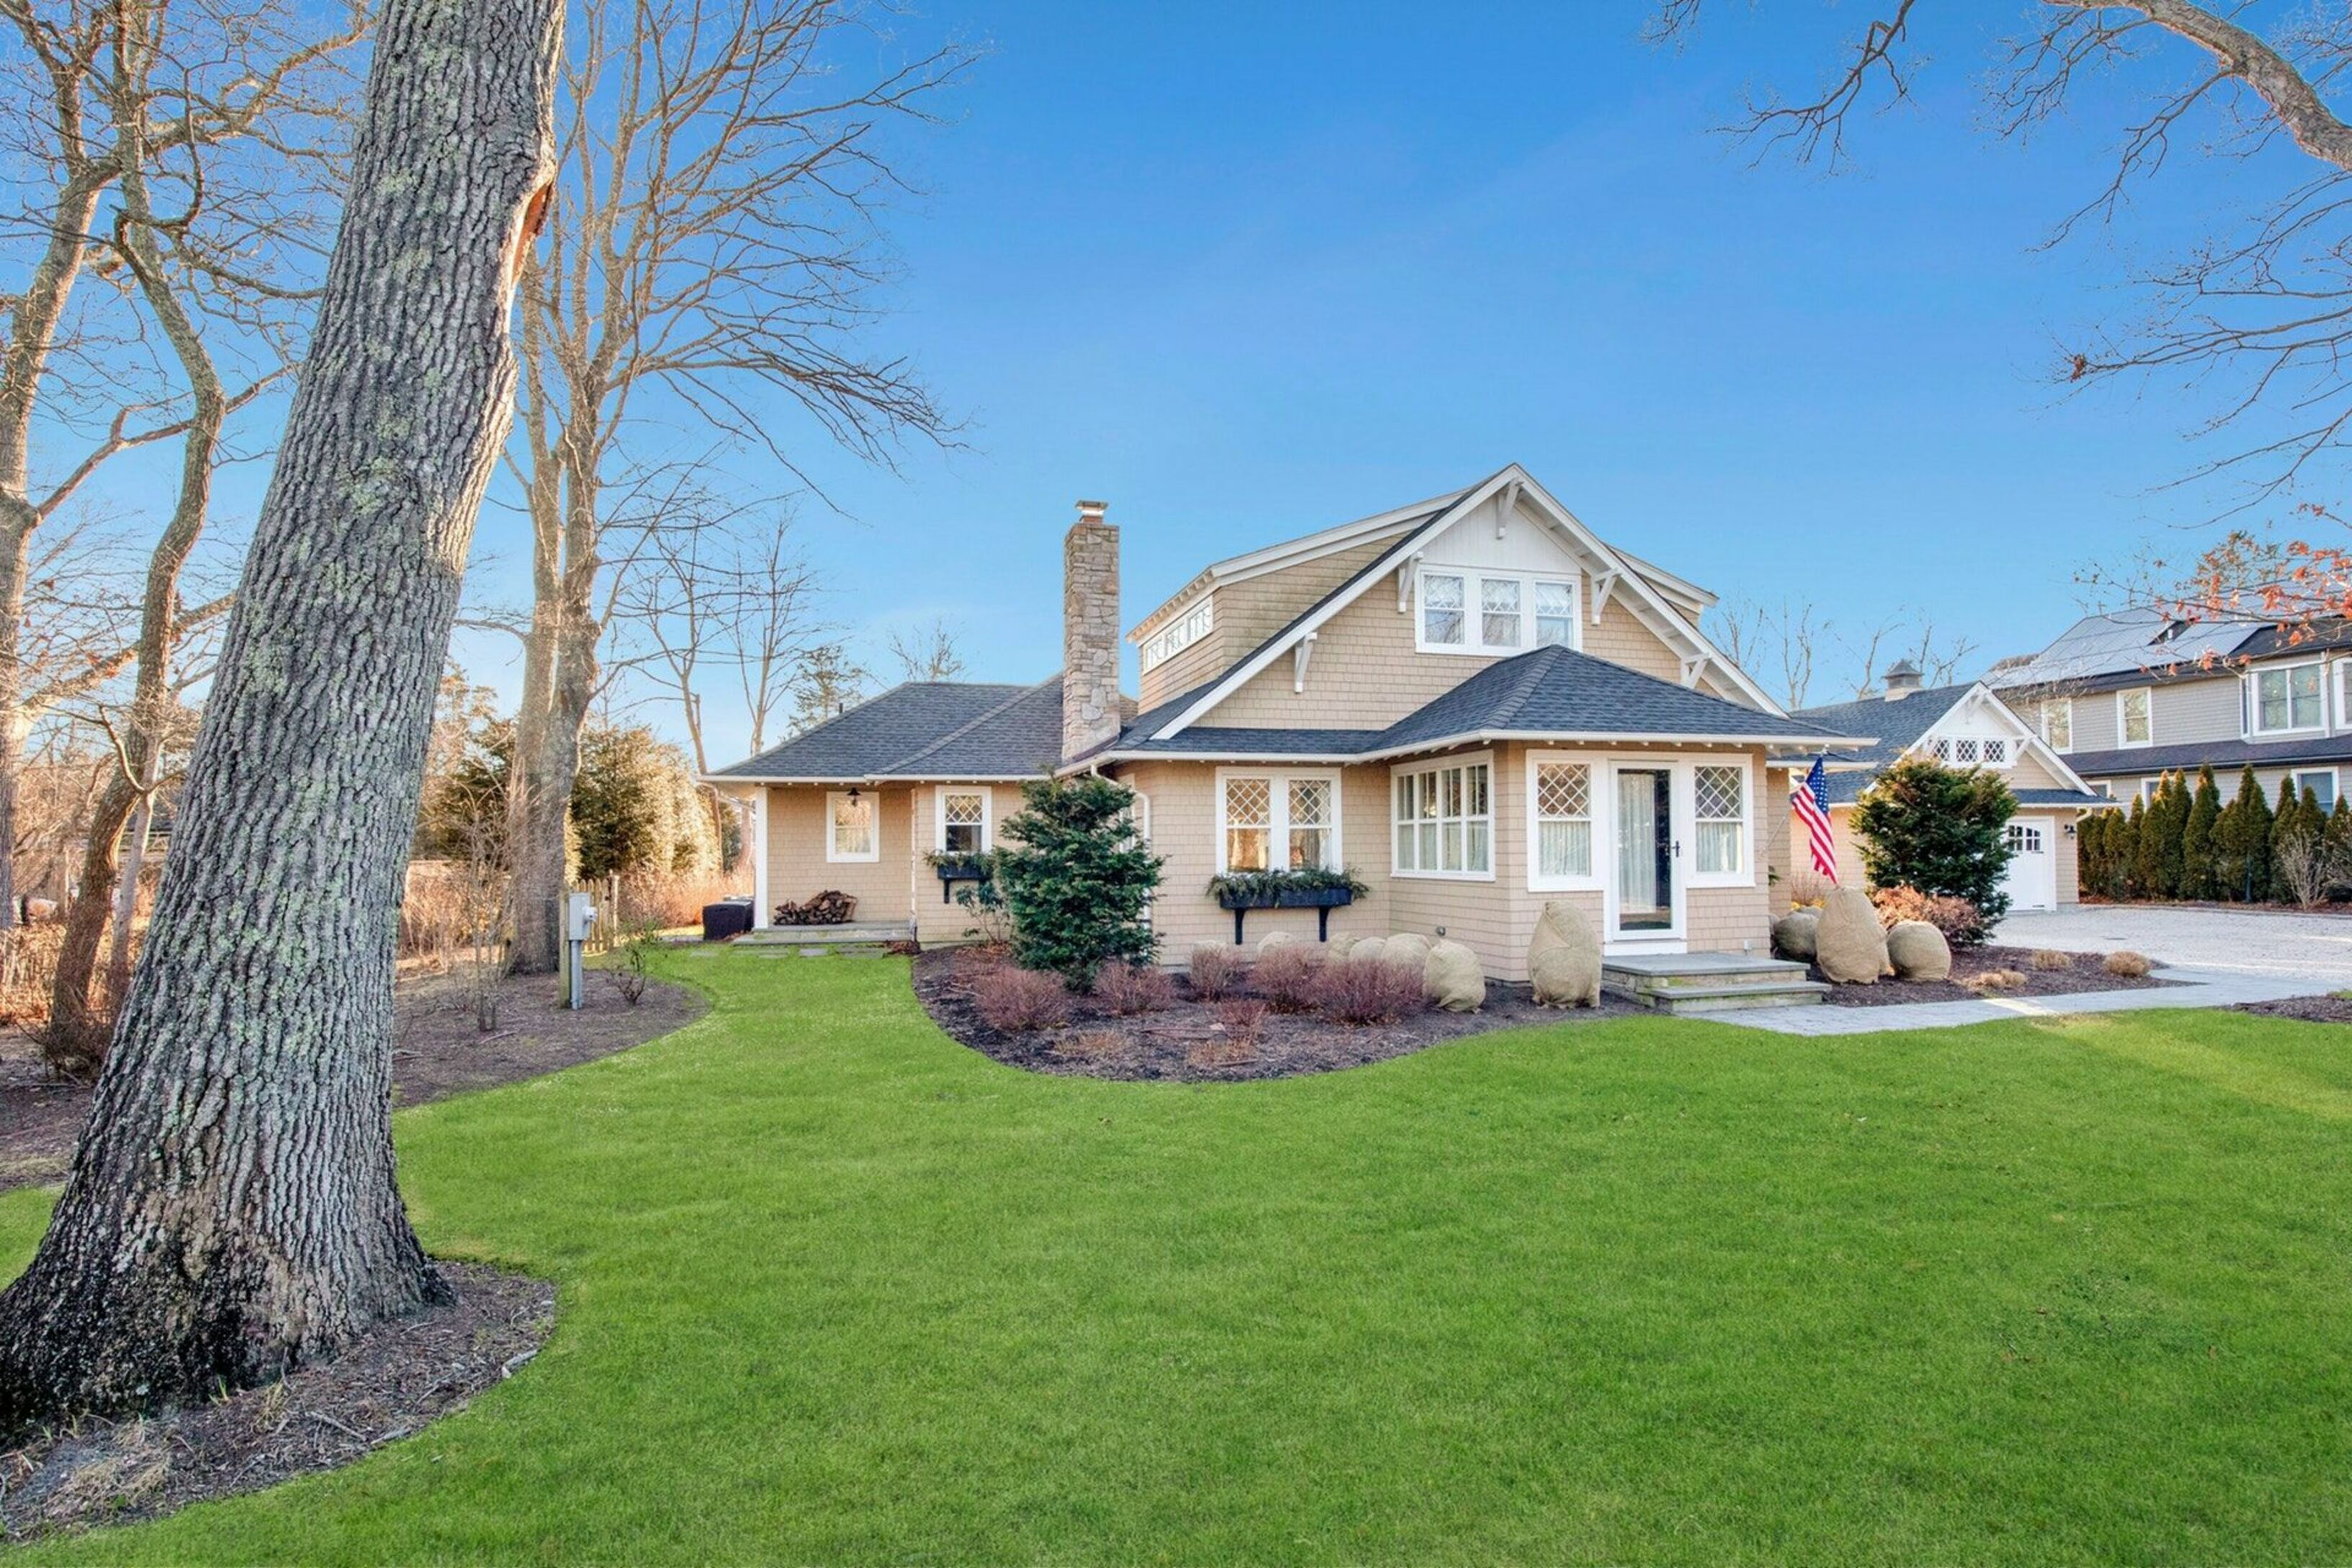 10 Walnut Ave - East Quogue, New York